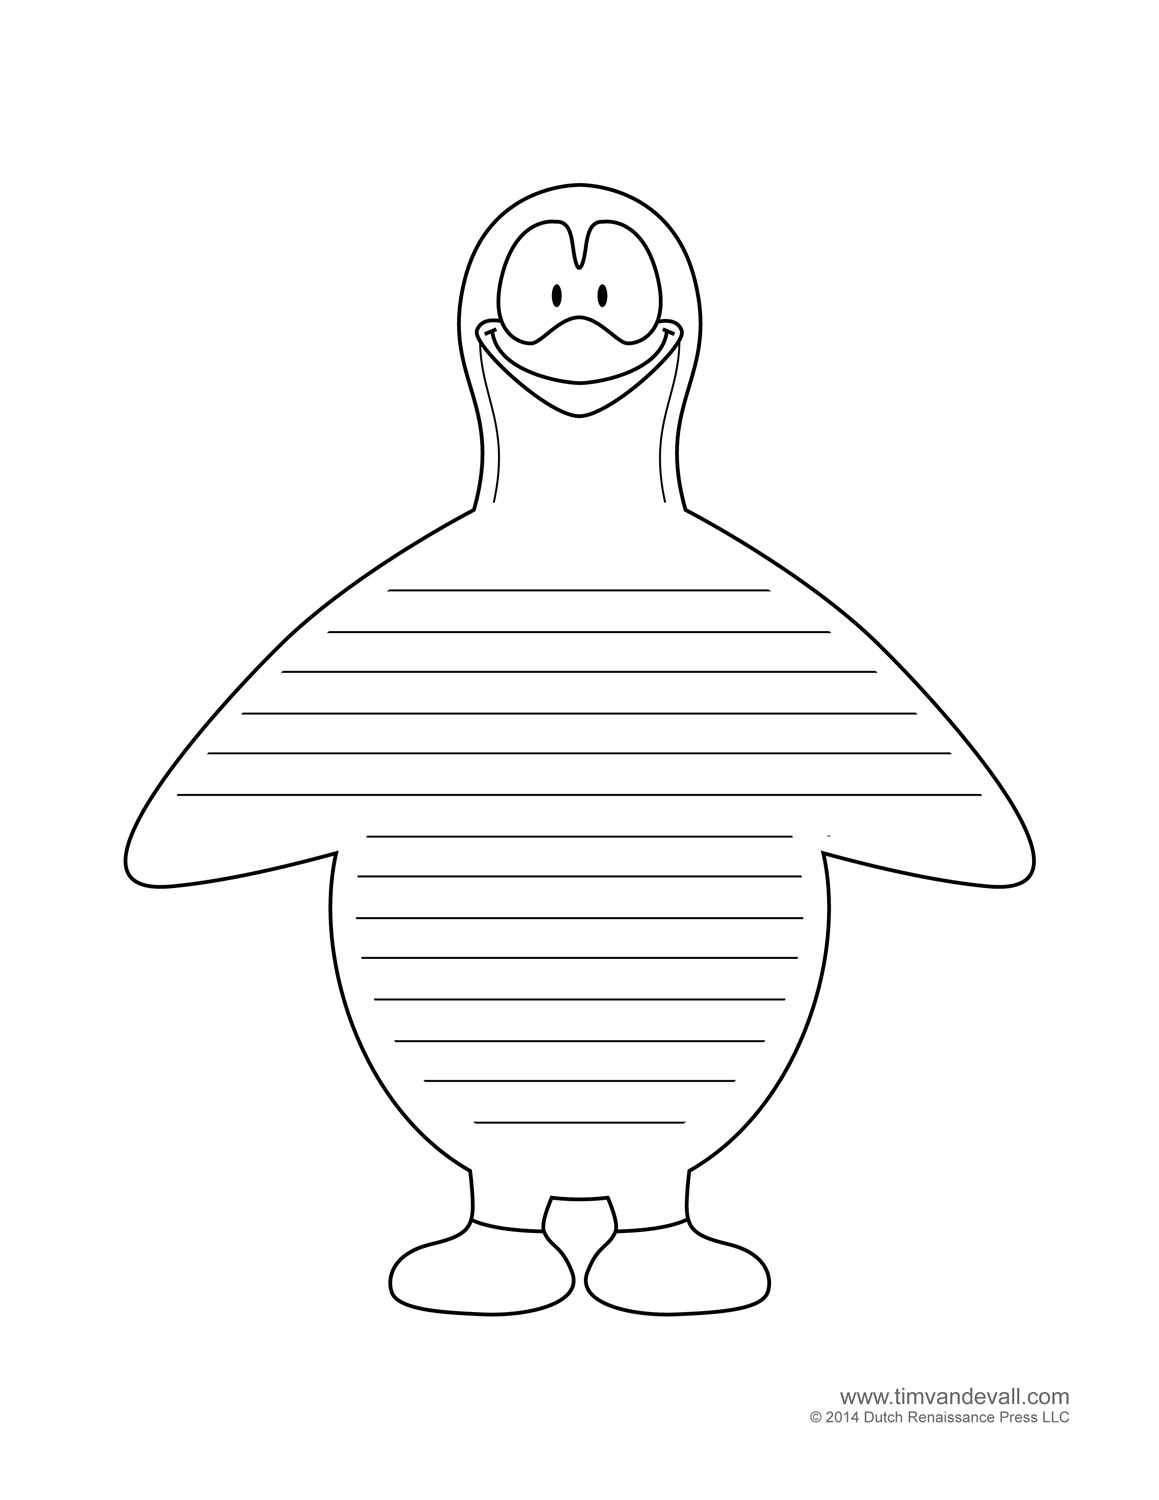 Penguin Template, Coloring Pages, Clipart Pictures And Crafts - Free Printable Penguin Books